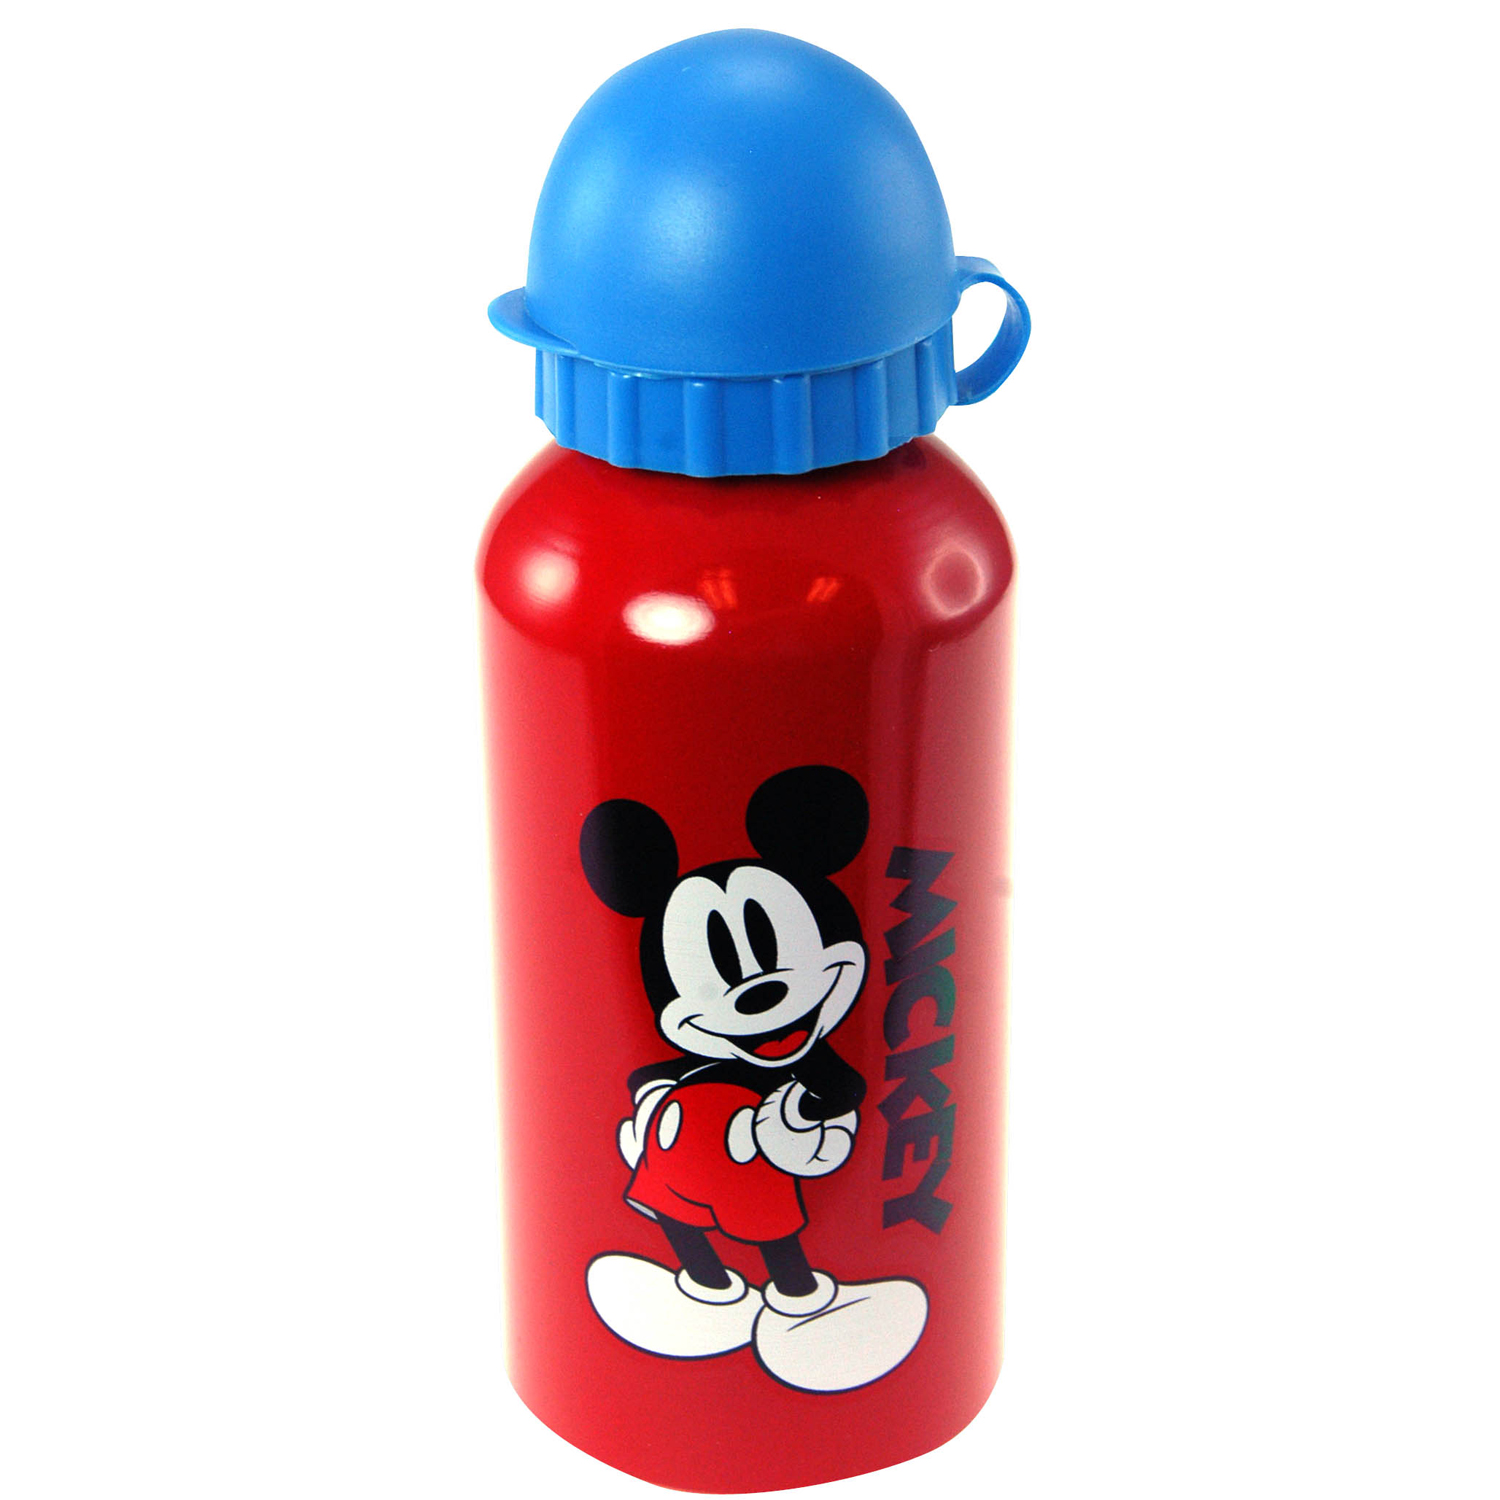 Disney Mickey Mouse Classic 14oz Aluminum Pull Top Water Bottle